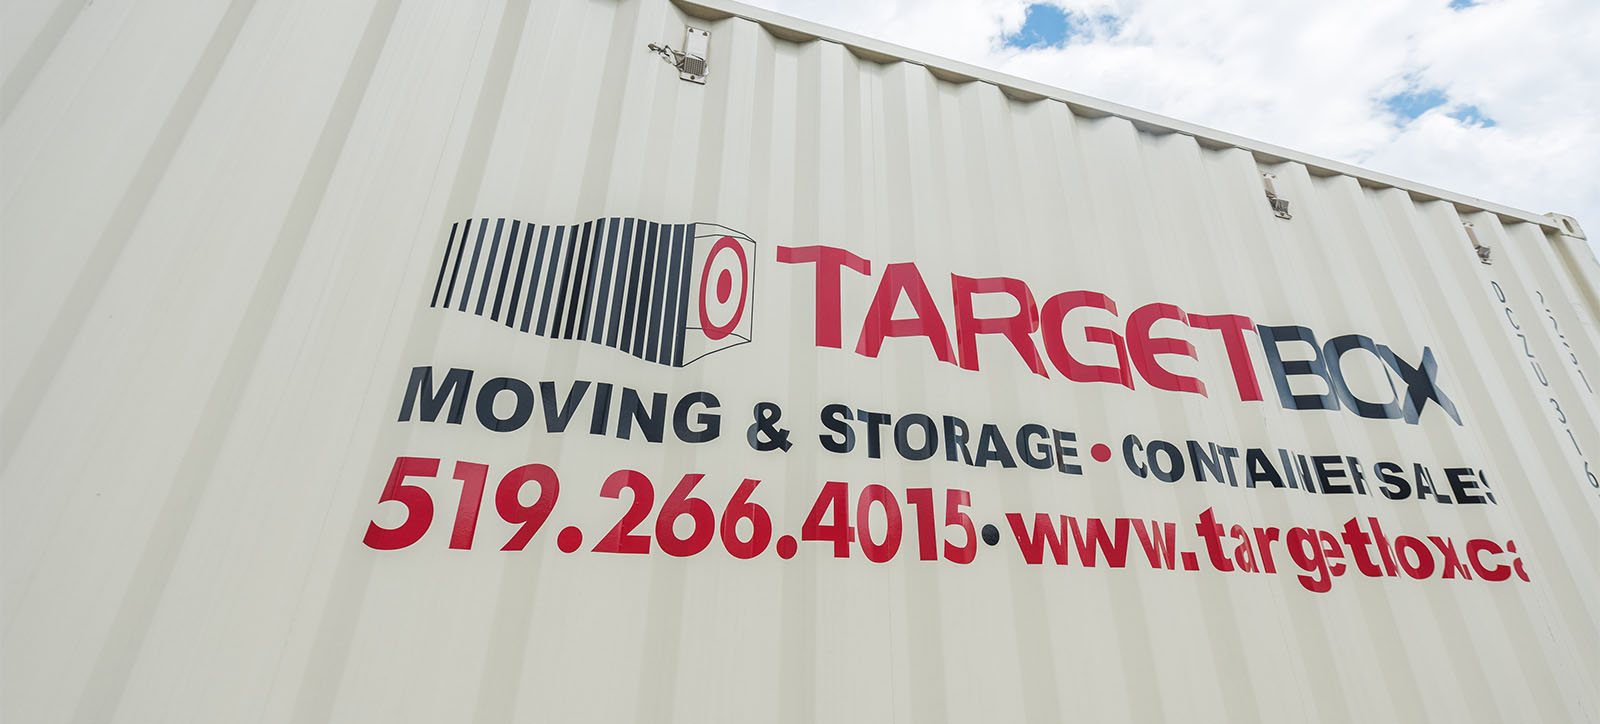 Portable Storage Units For Winter Storage - TargetBox Container Rentals & Sales